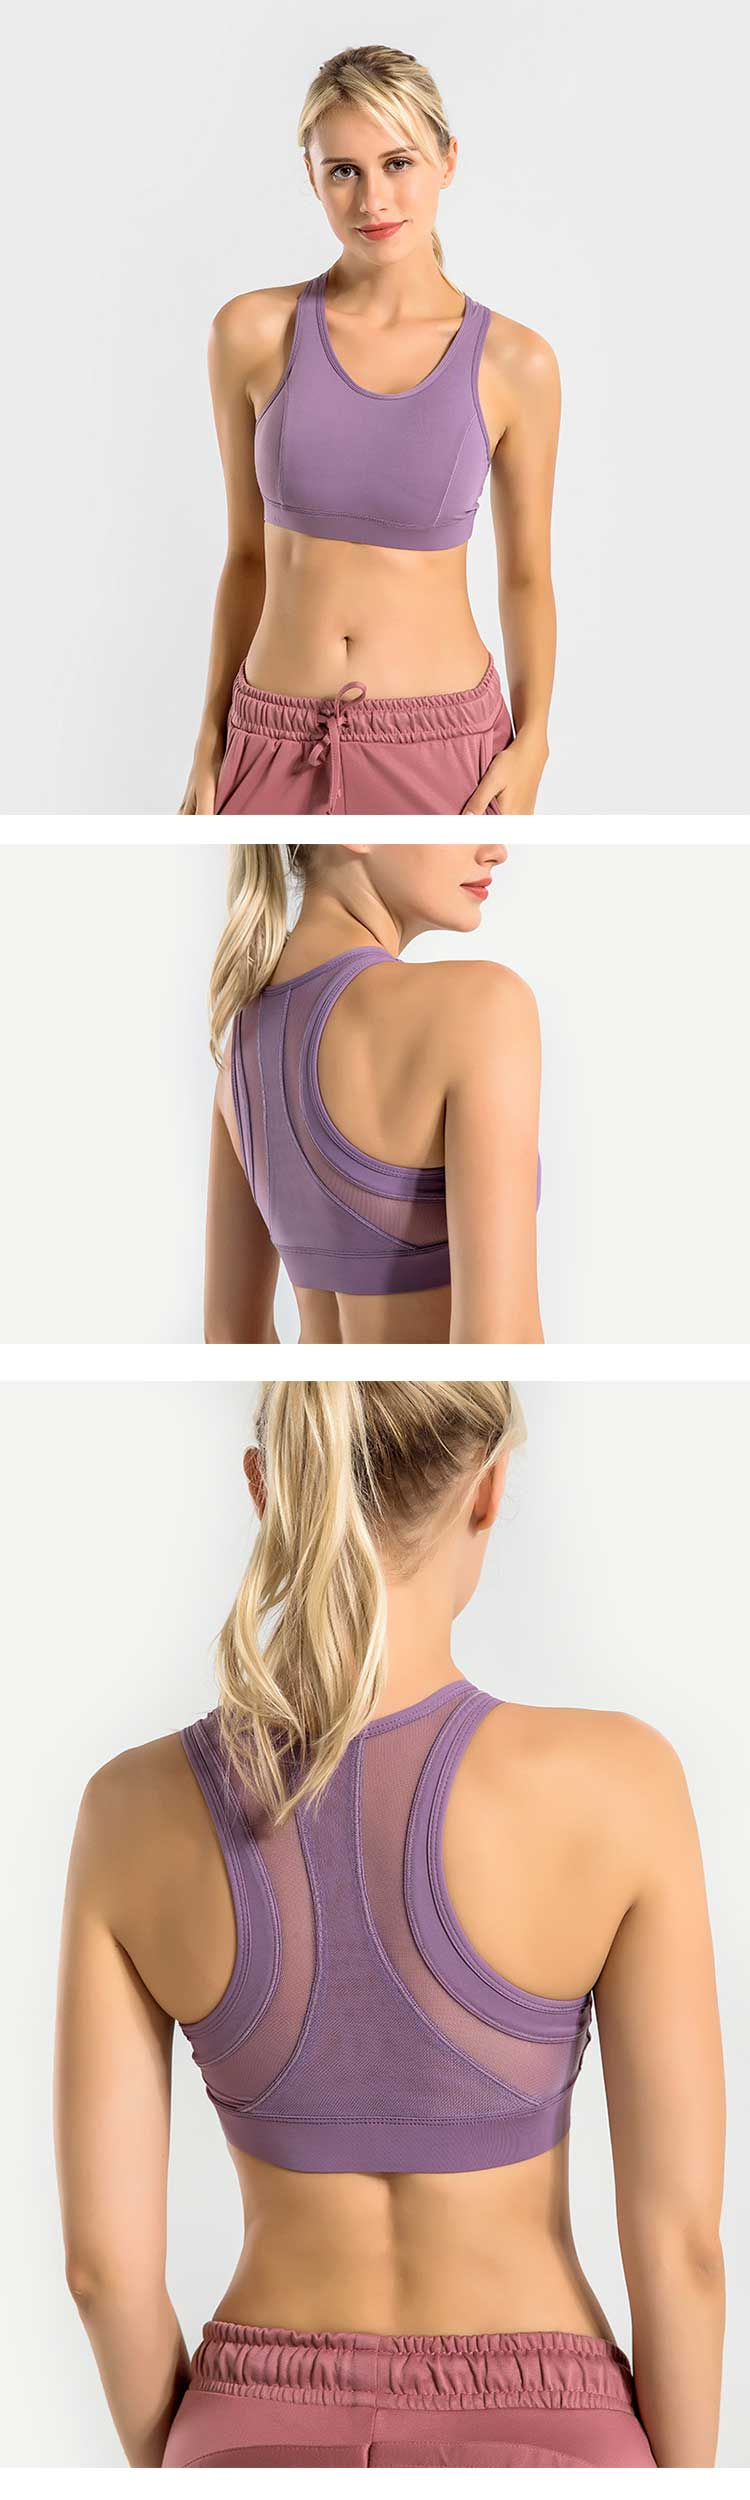 Draw-the-lines-of-the-front-chest-and-completely-wrap-the-chest